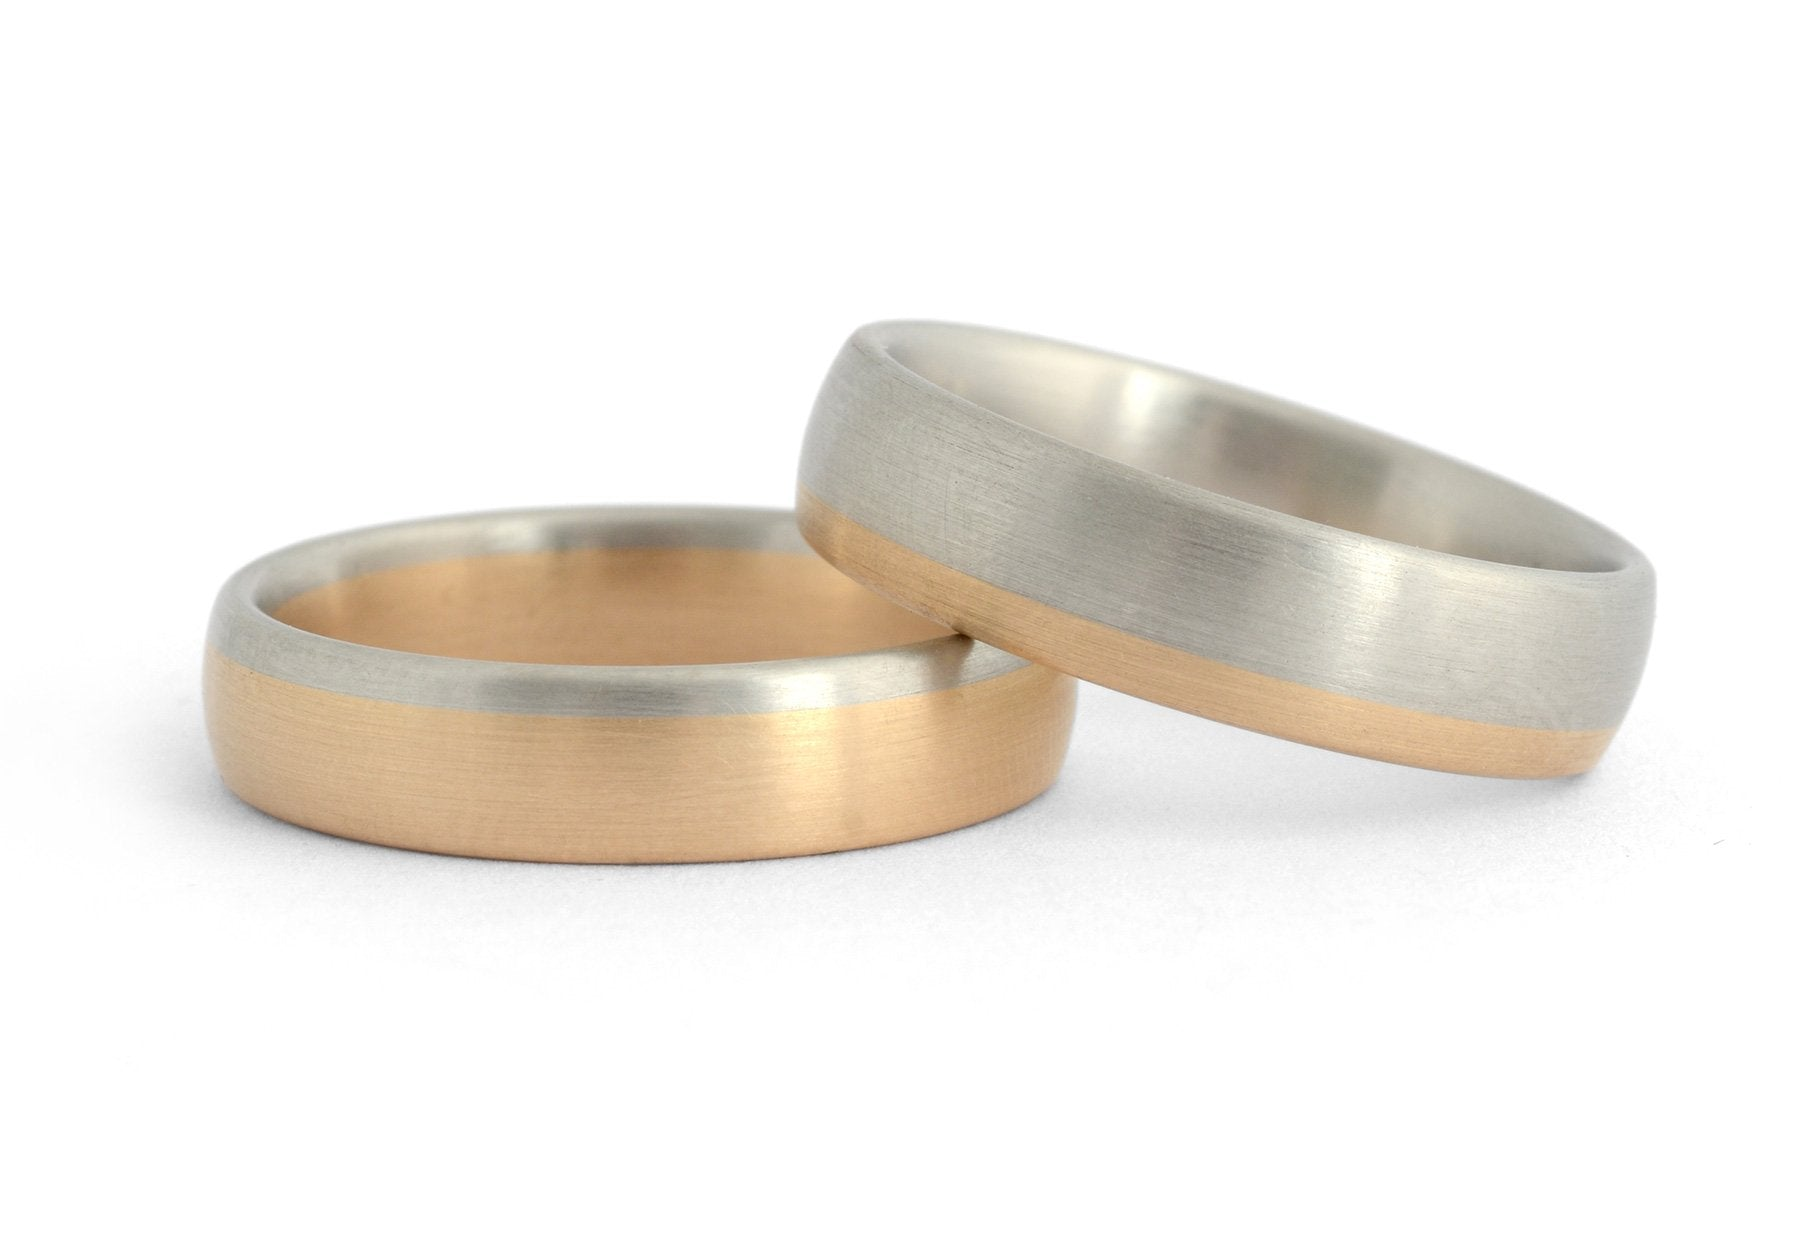 Mixed metal men's wedding bands in 18 carat rose and white gold